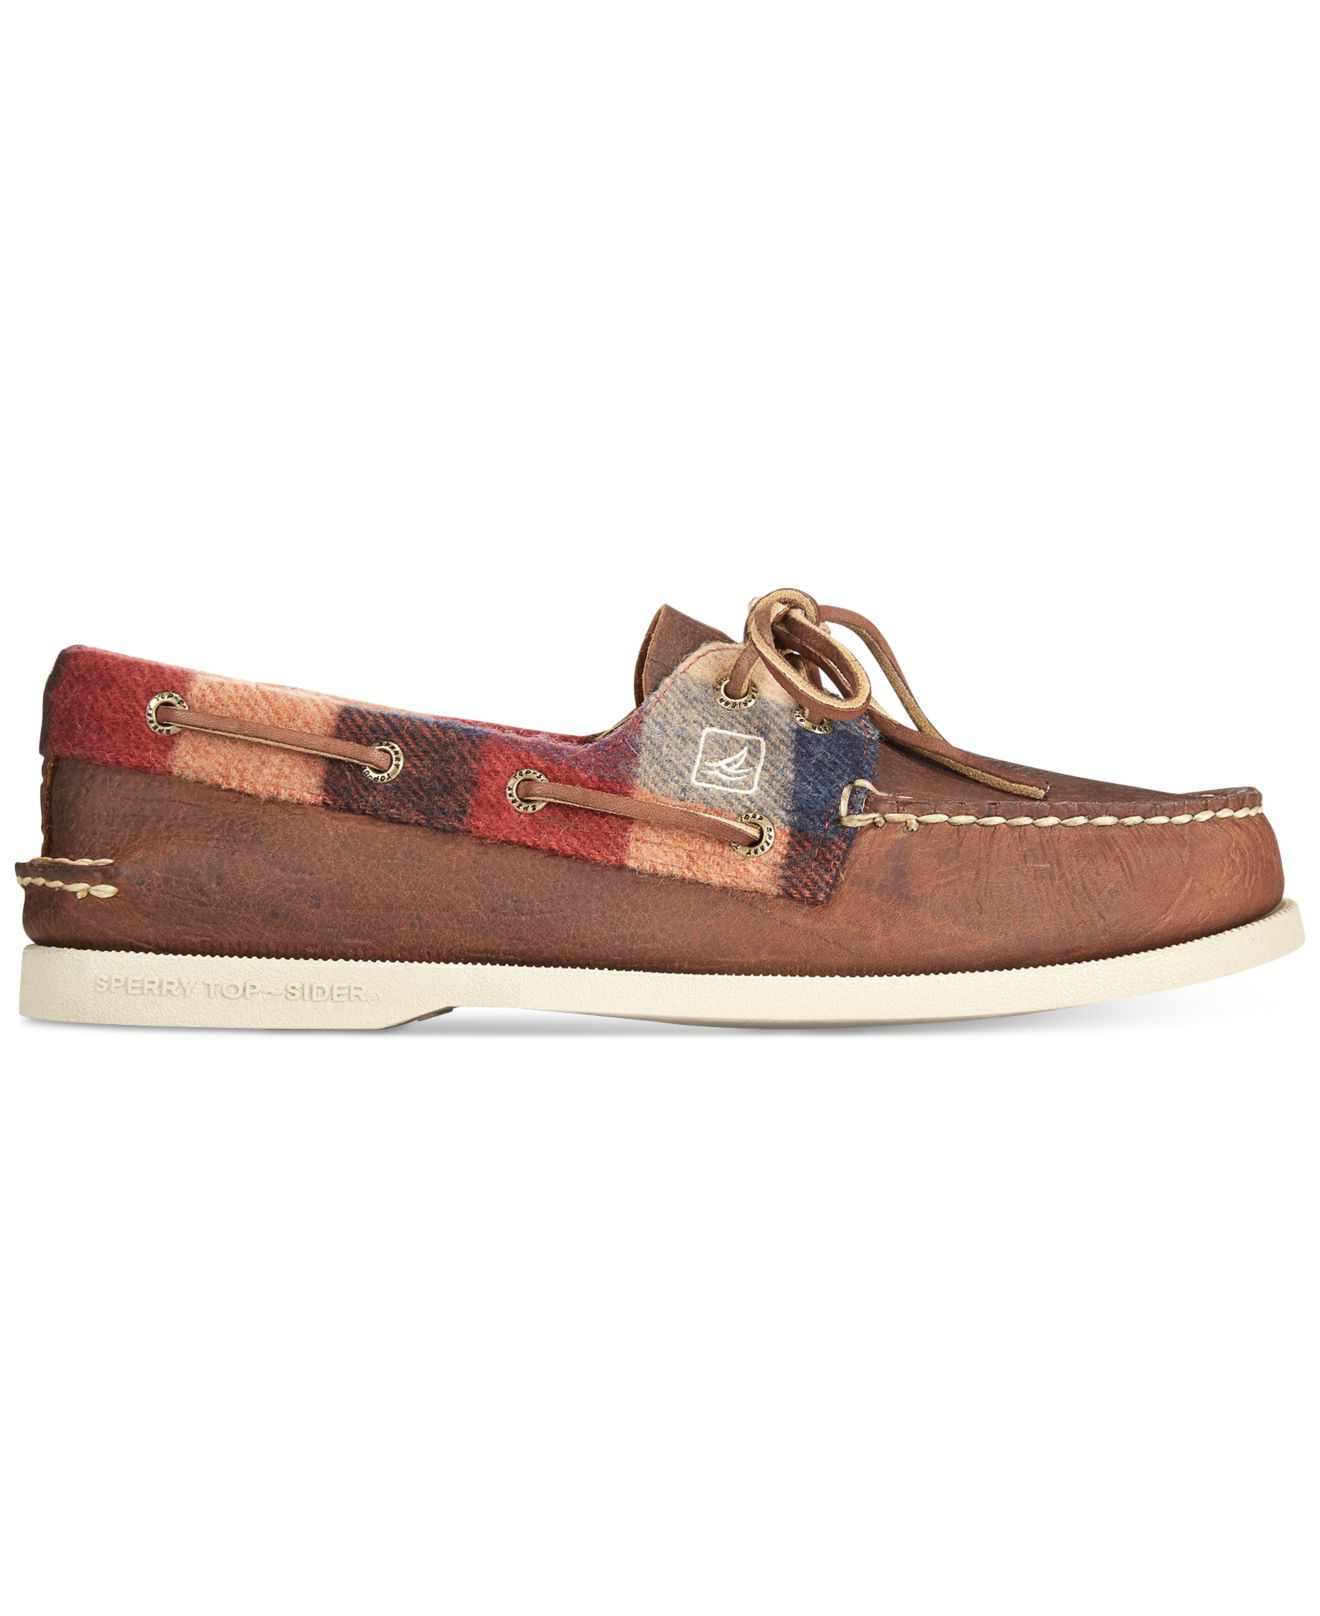 Sperry Top Sider Plaid Shoes